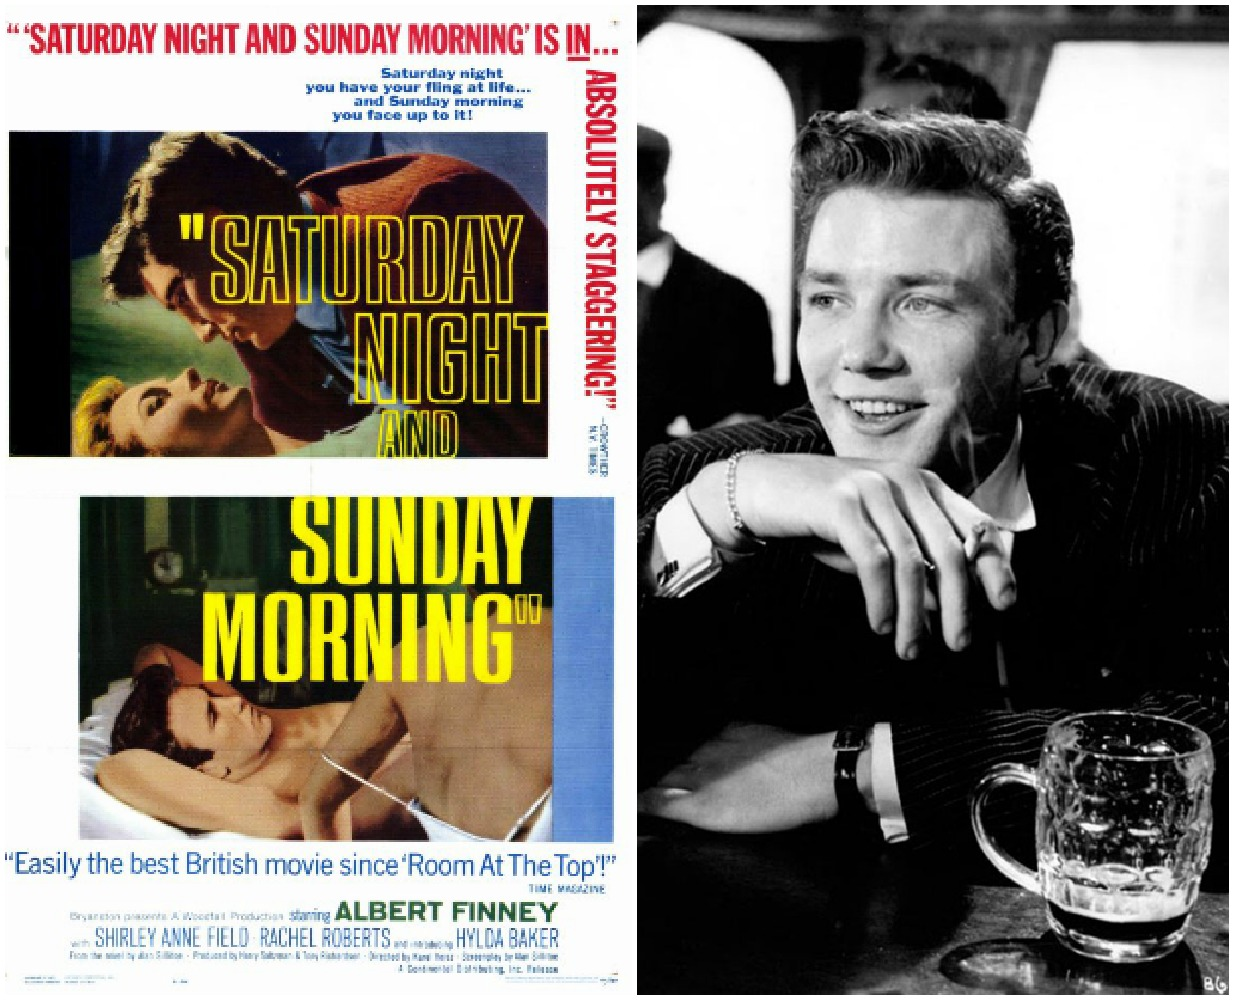 saturday night and sunday morning by allan Saturday night and sunday morning is a classic social realist film of the british new wave made in 1960, it was groundbreaking in both its portrayal of the industrial nightmare of working class factory life, and its unrepentant, cocky anti-hero arthur seaton.